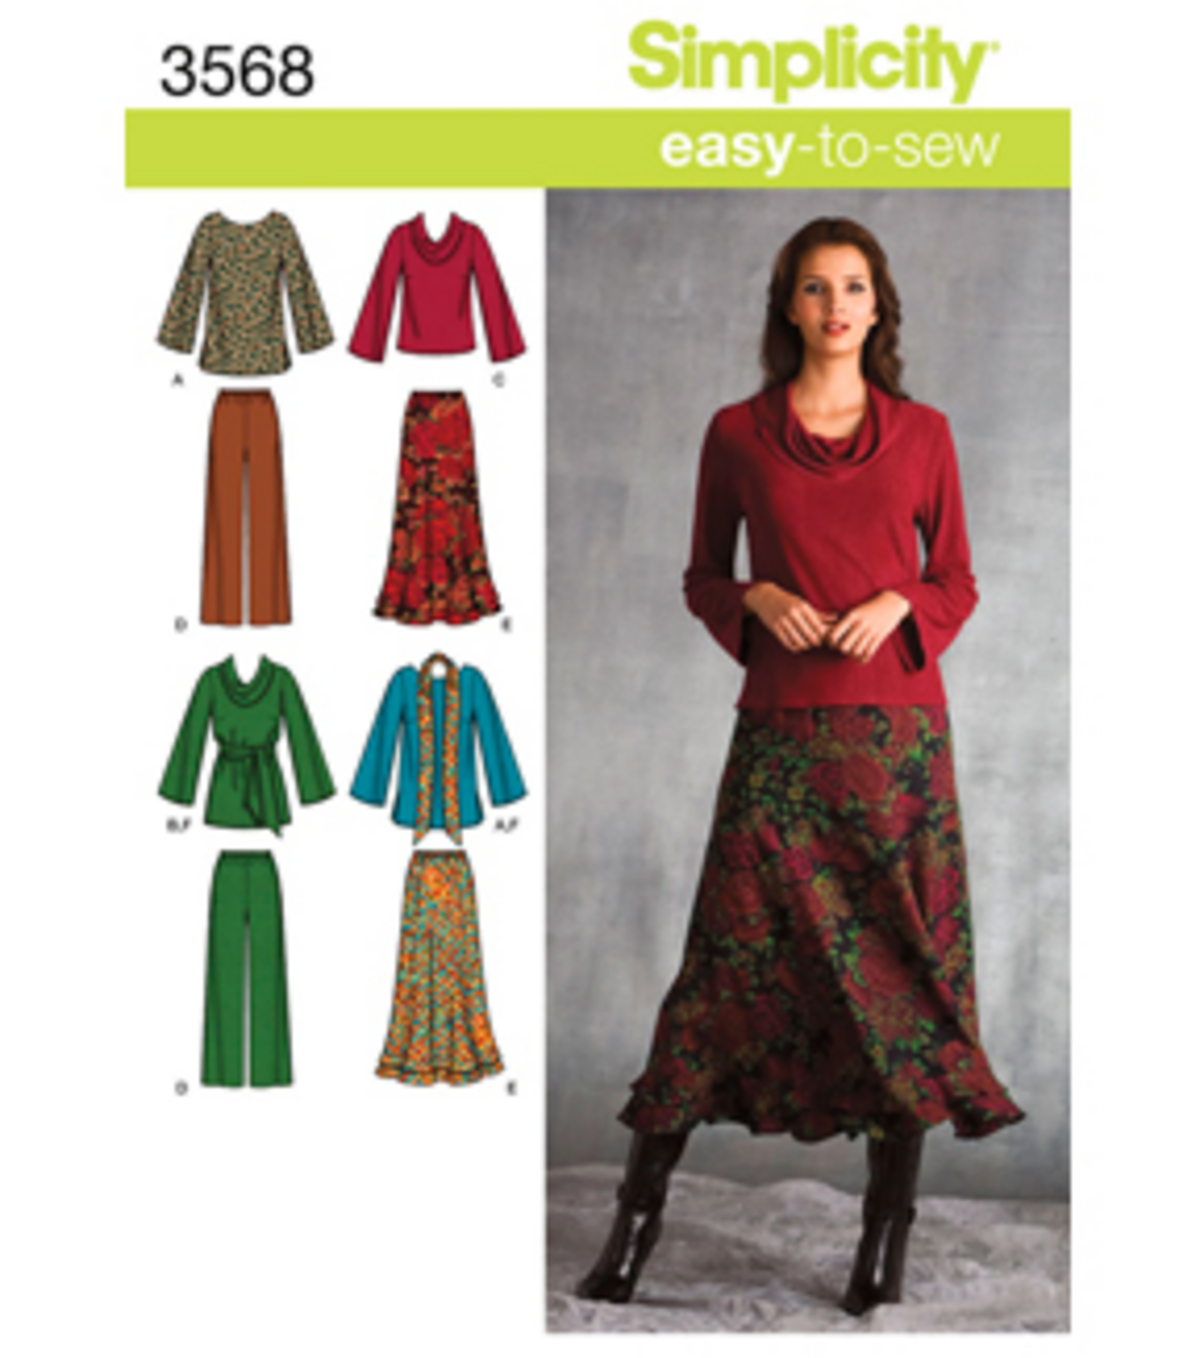 Simplicity Pattern 3568AA 10 12 14 1-Simplicity Misses